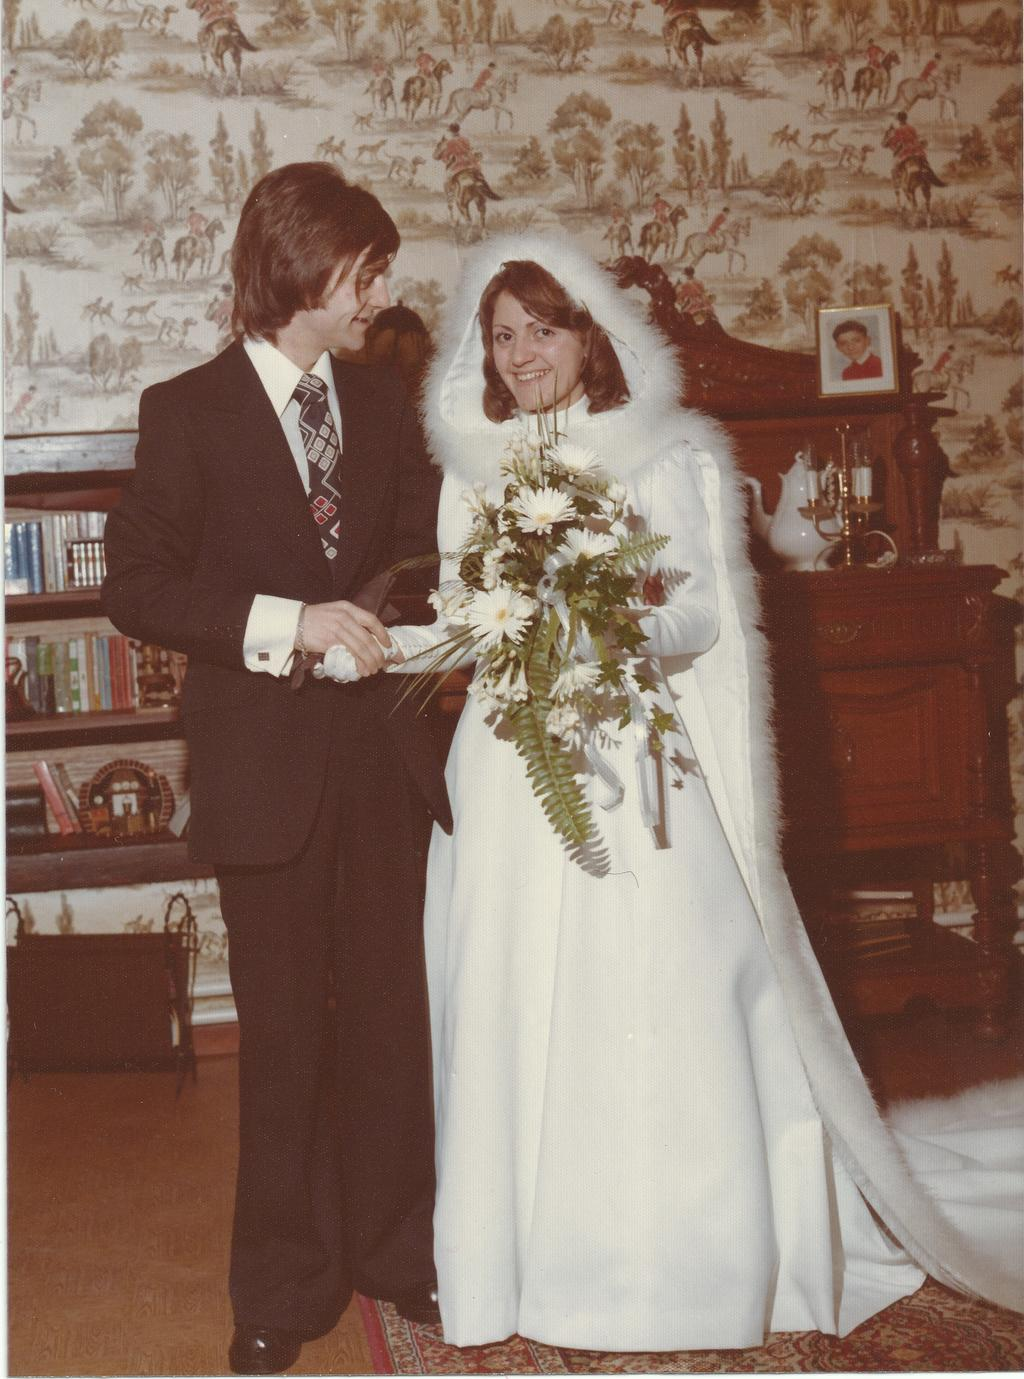 Wedding day 1974, before.